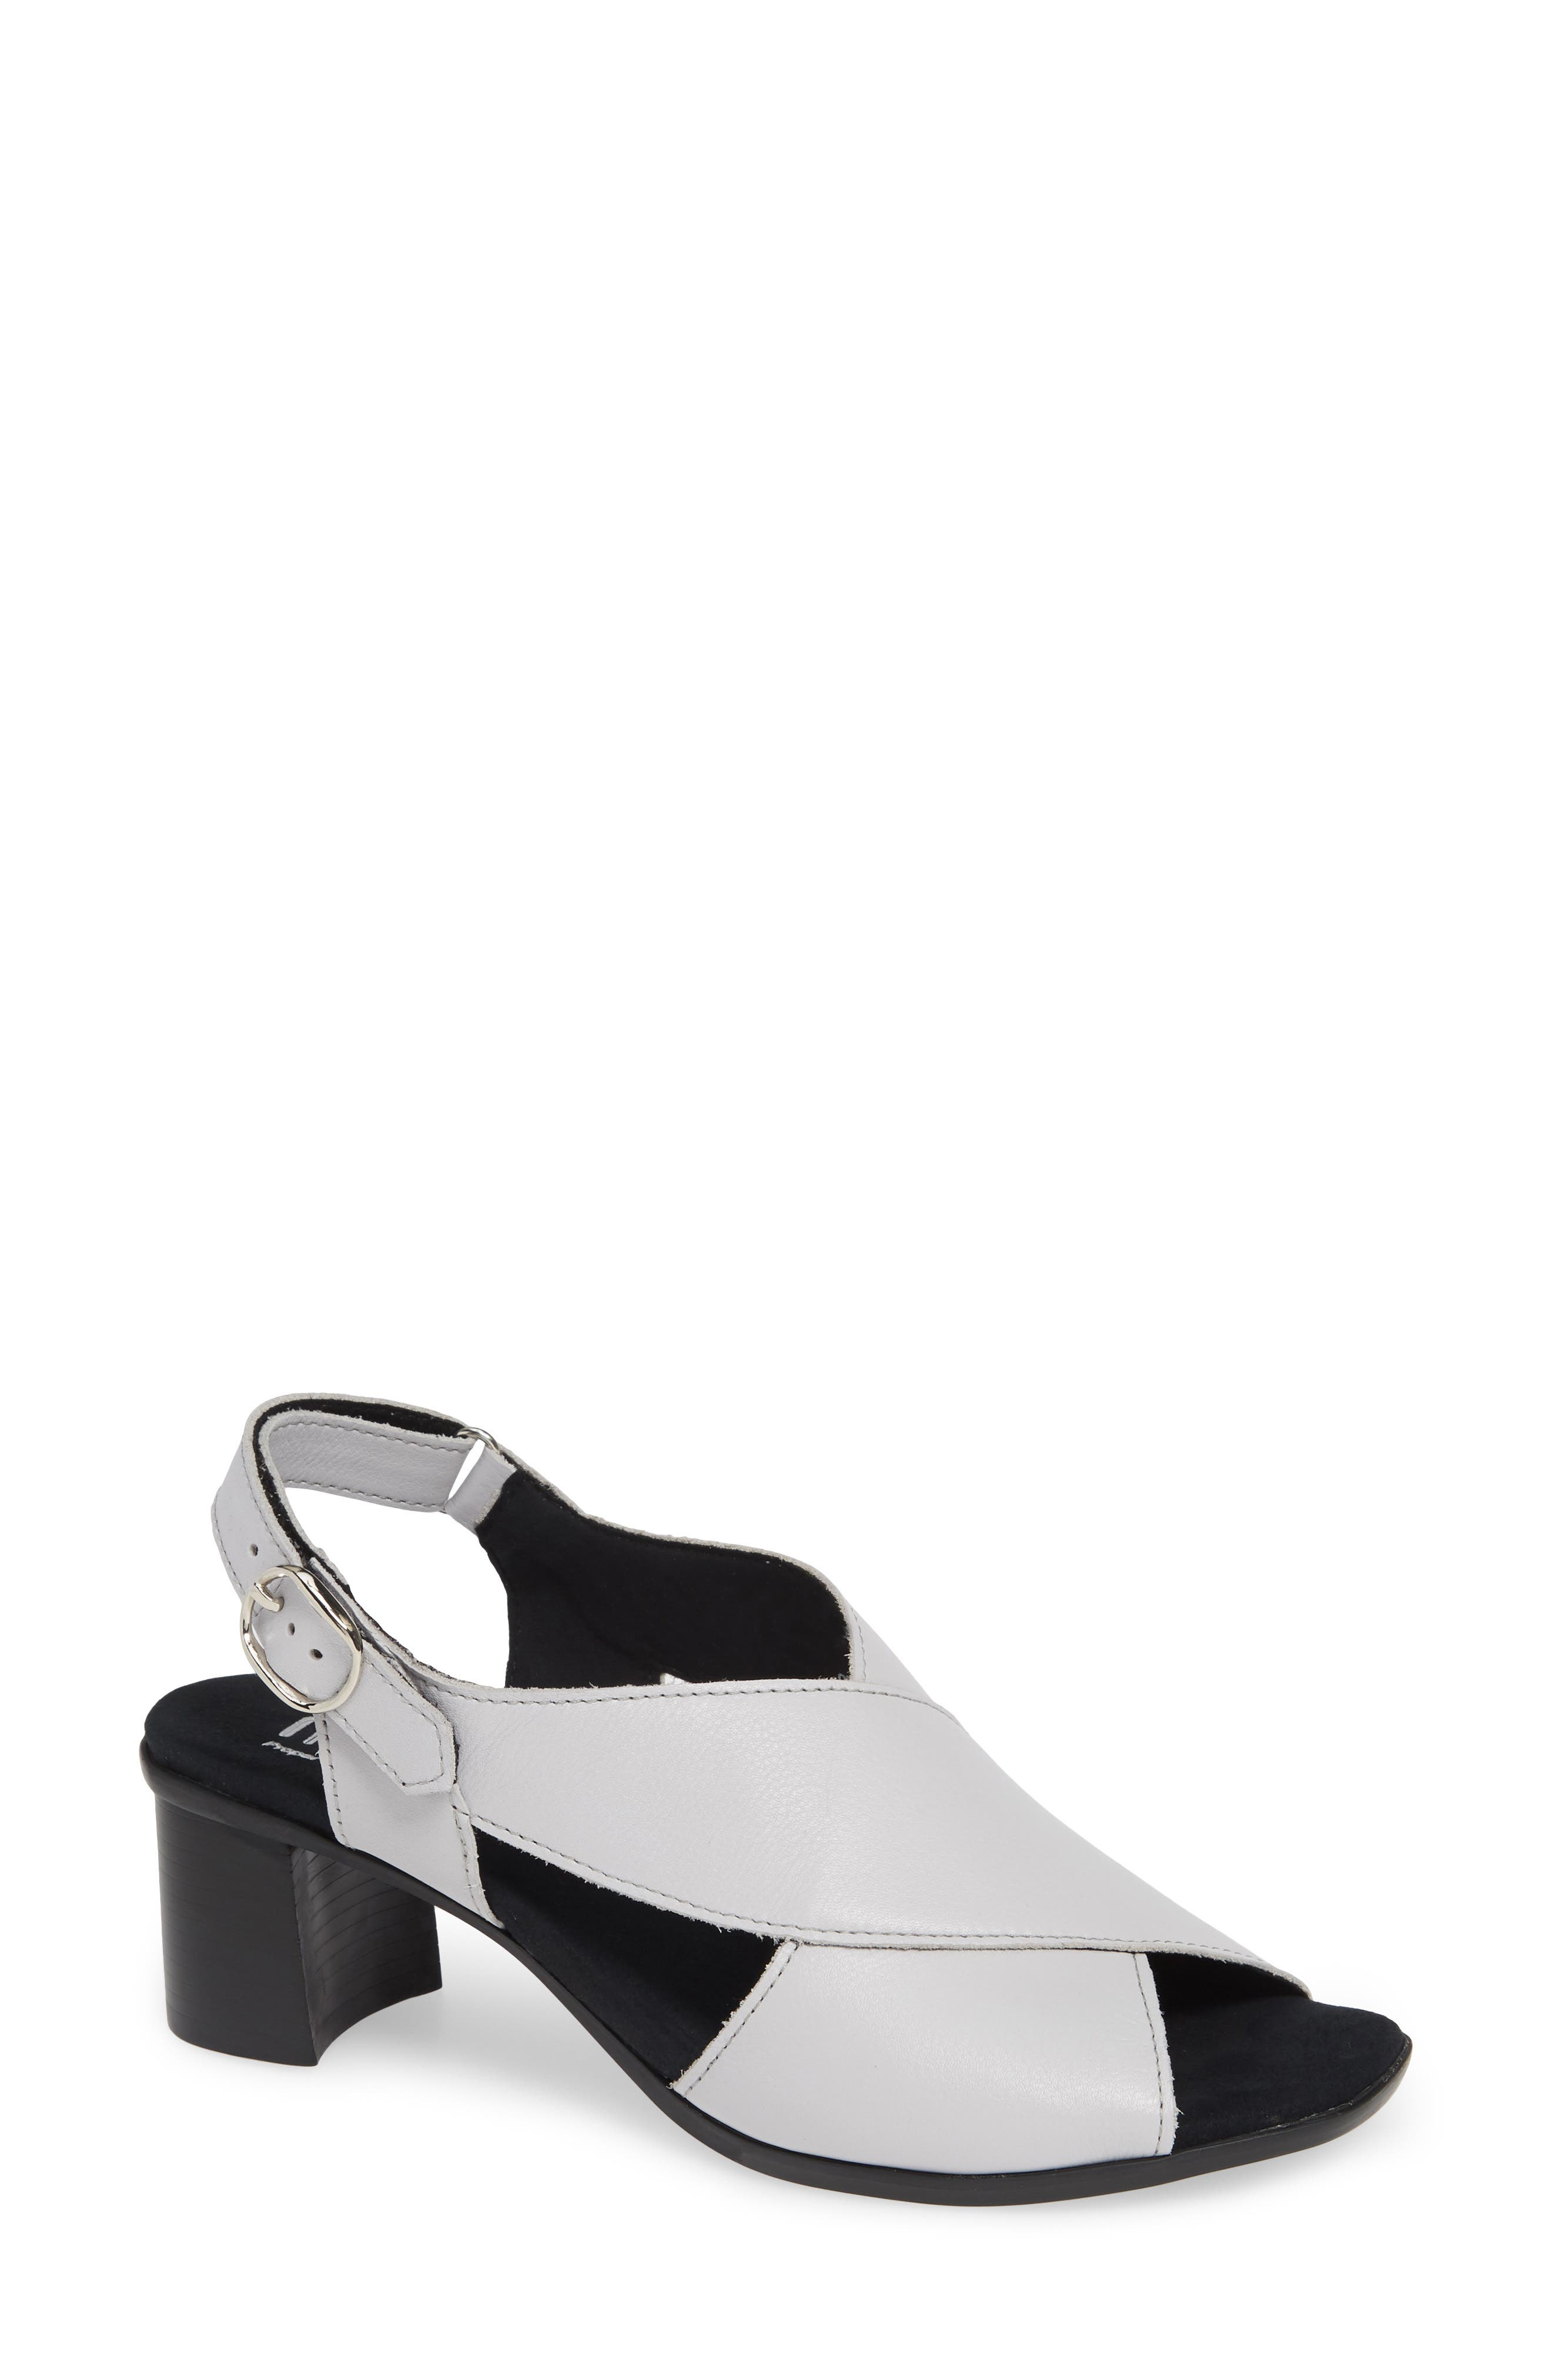 Laine Block Heel Sandal, Main, color, WHITE LEATHER